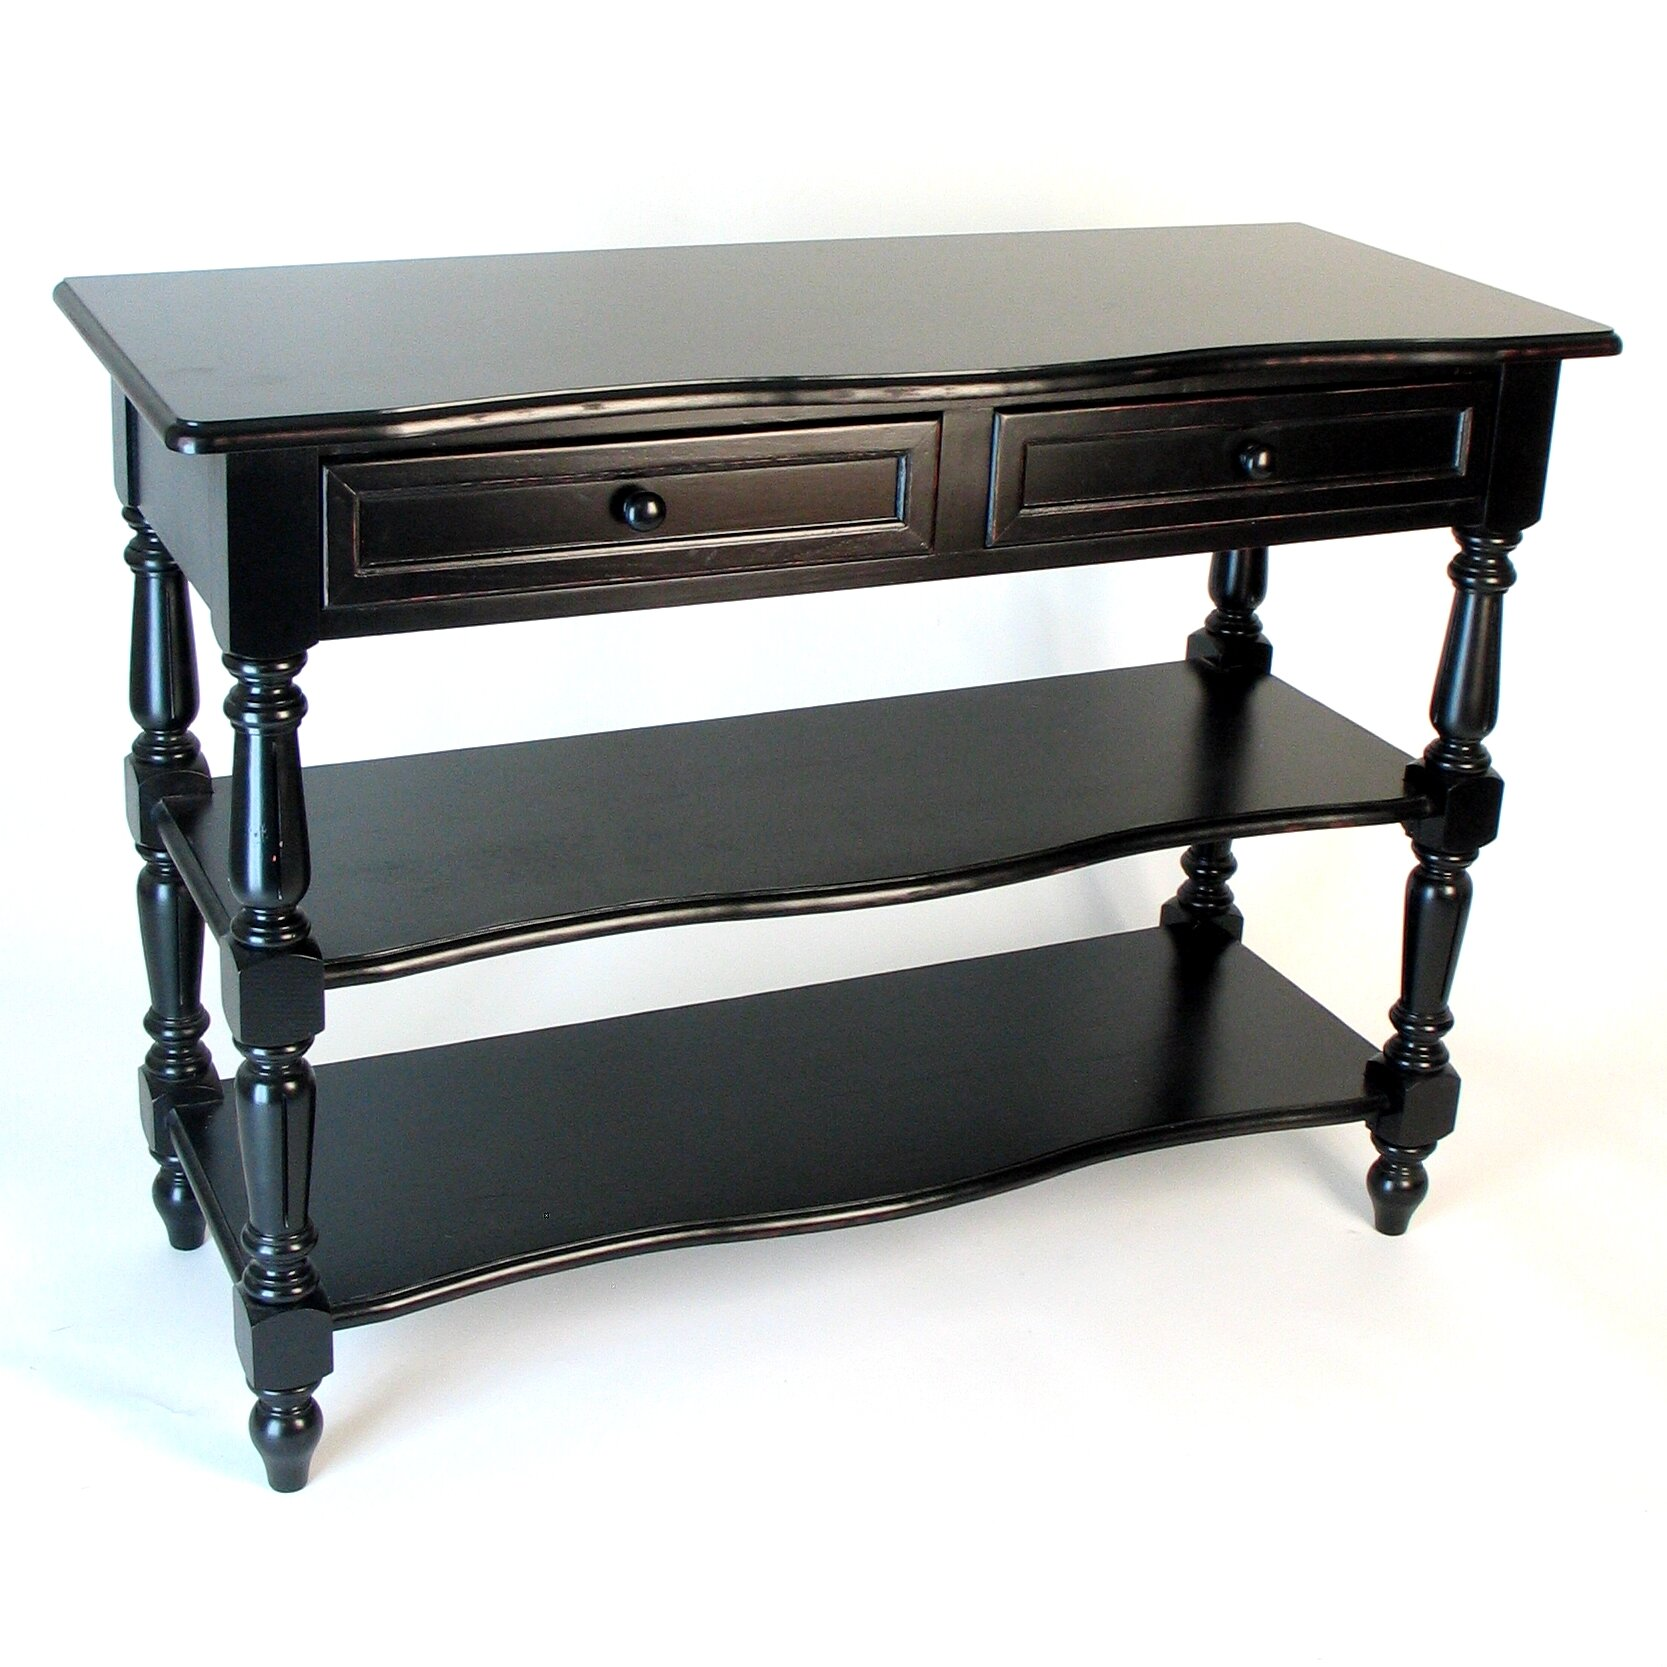 wayborn country console table reviews wayfair. Black Bedroom Furniture Sets. Home Design Ideas